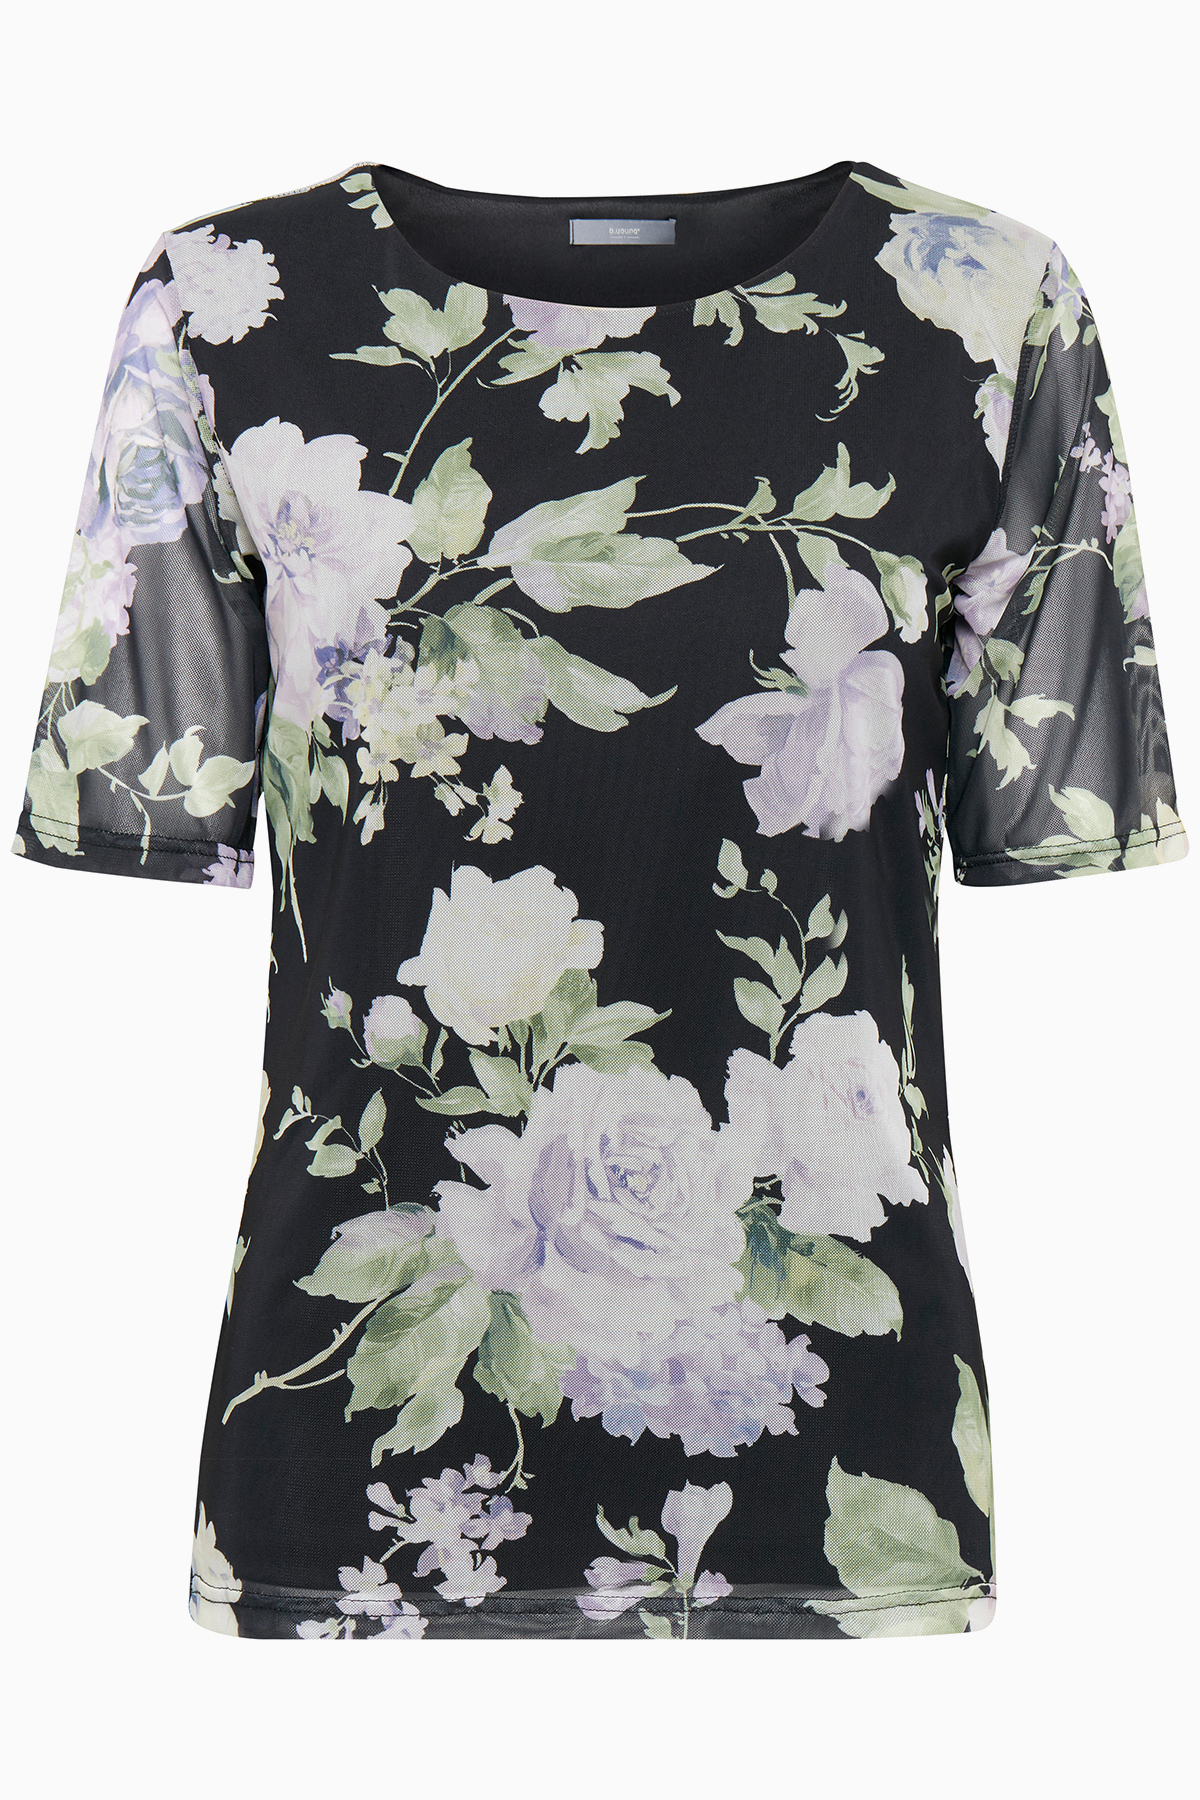 Image of b.young Dame Smuk Talay bluse - Sort/off-white